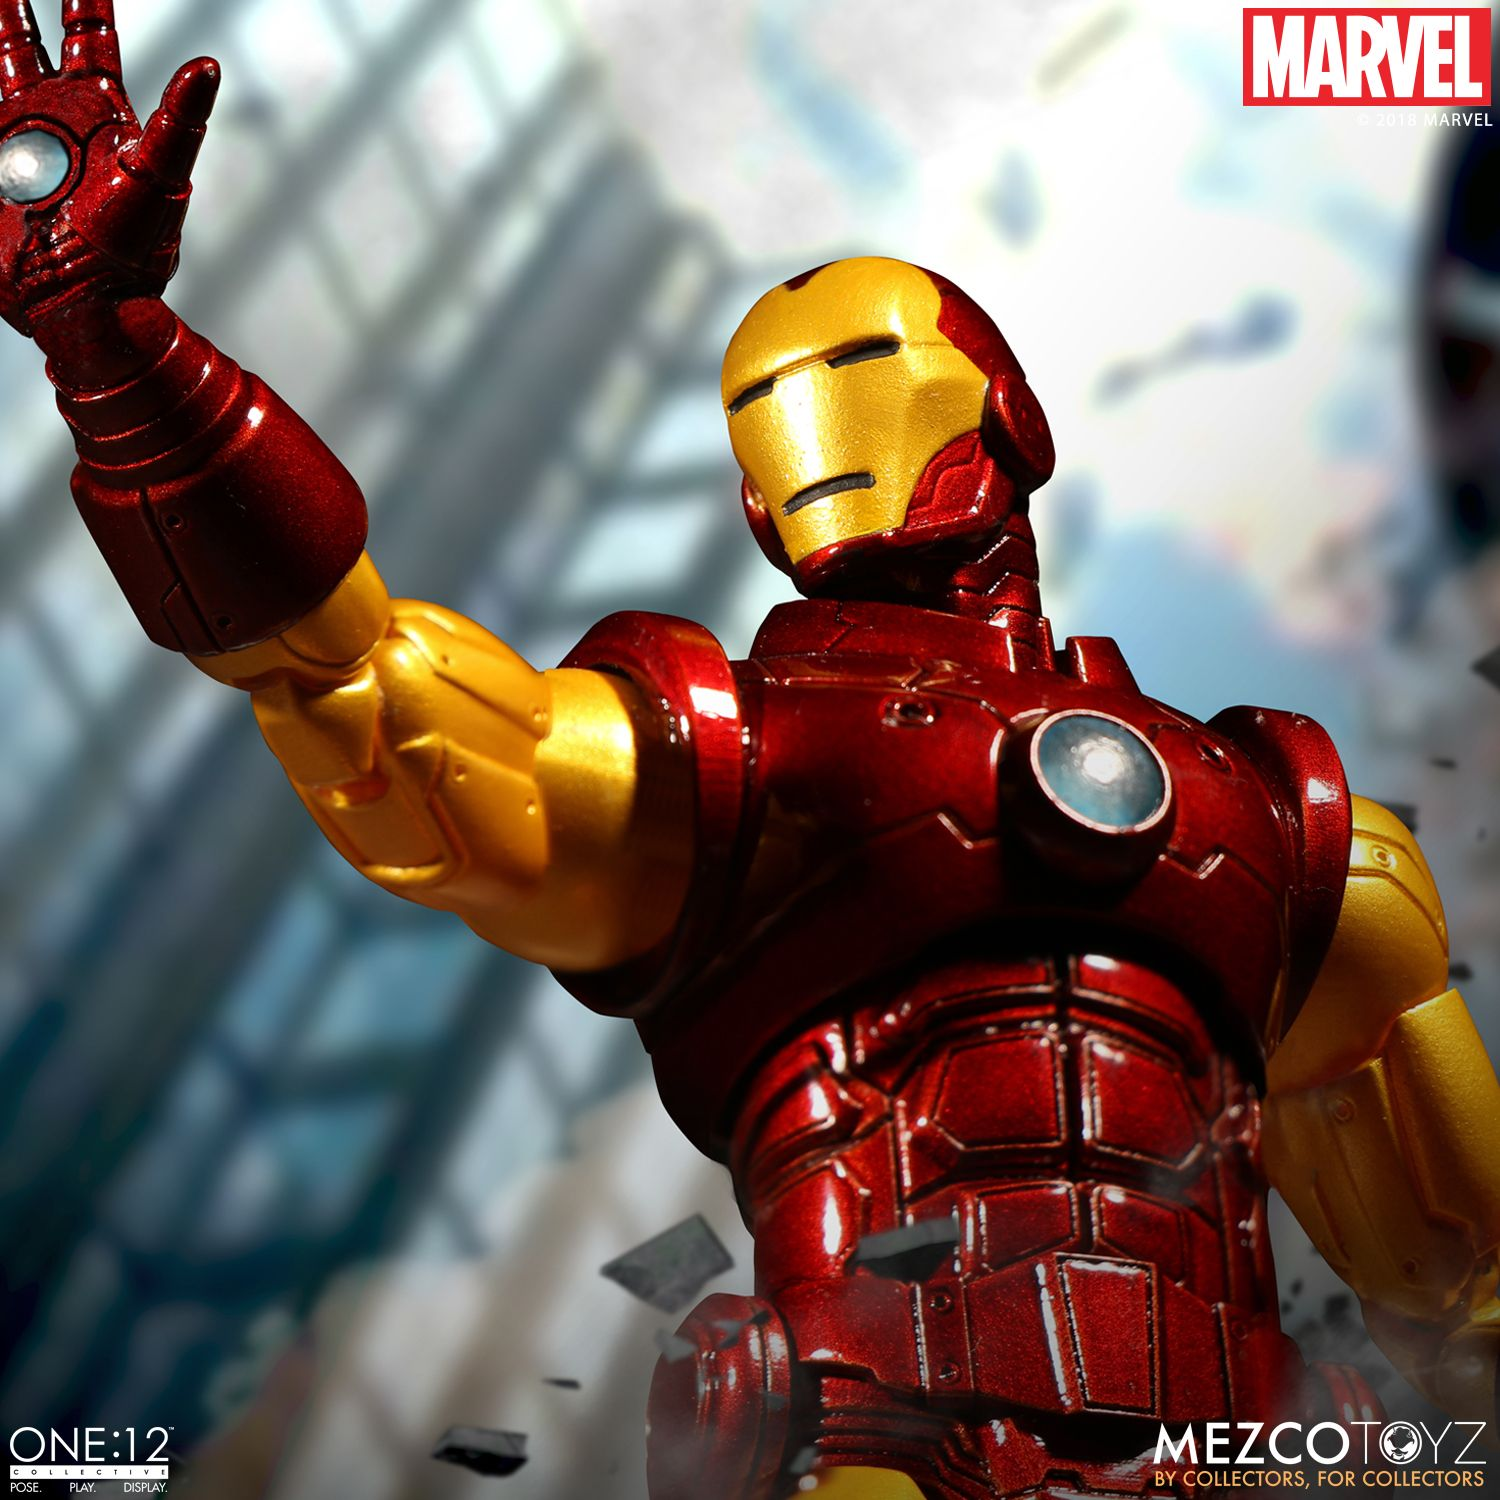 Mezco toyz iron man one 12 collective figure available to pre order the toyark news - Iron man 1 images ...